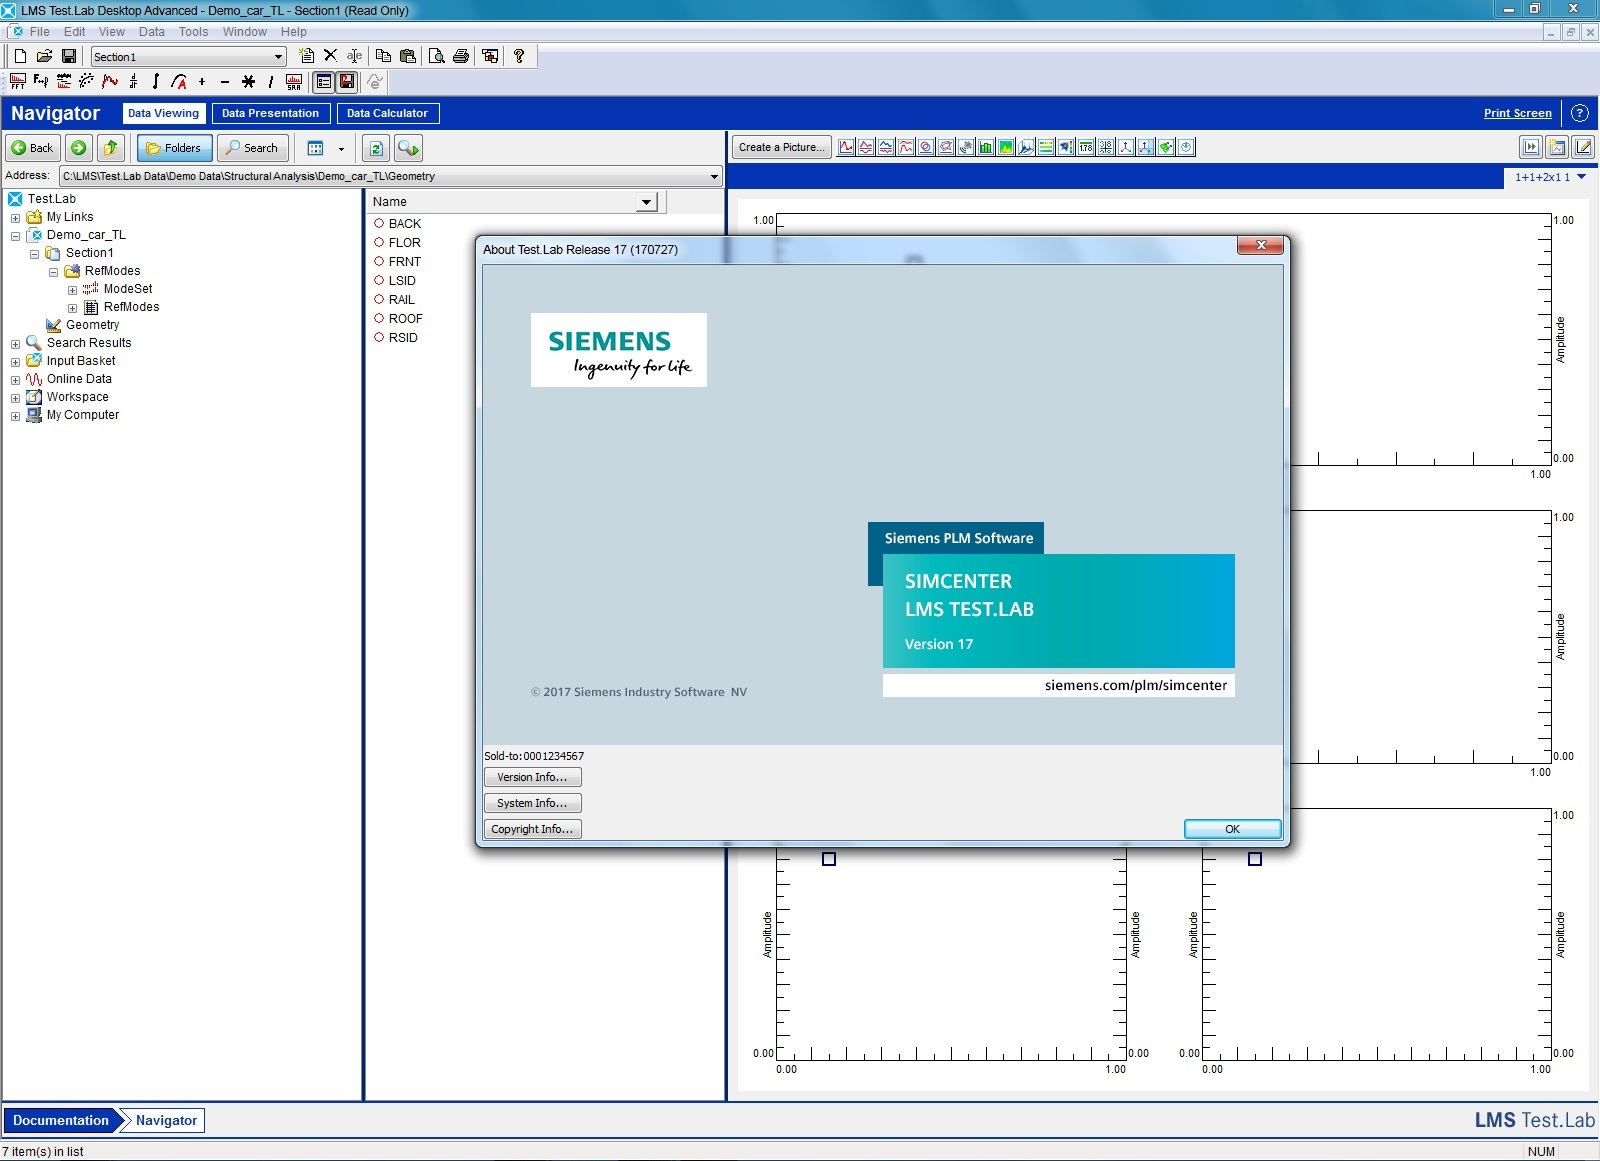 download Siemens LMS Test.Lab 17A x86 x64 full license working forever